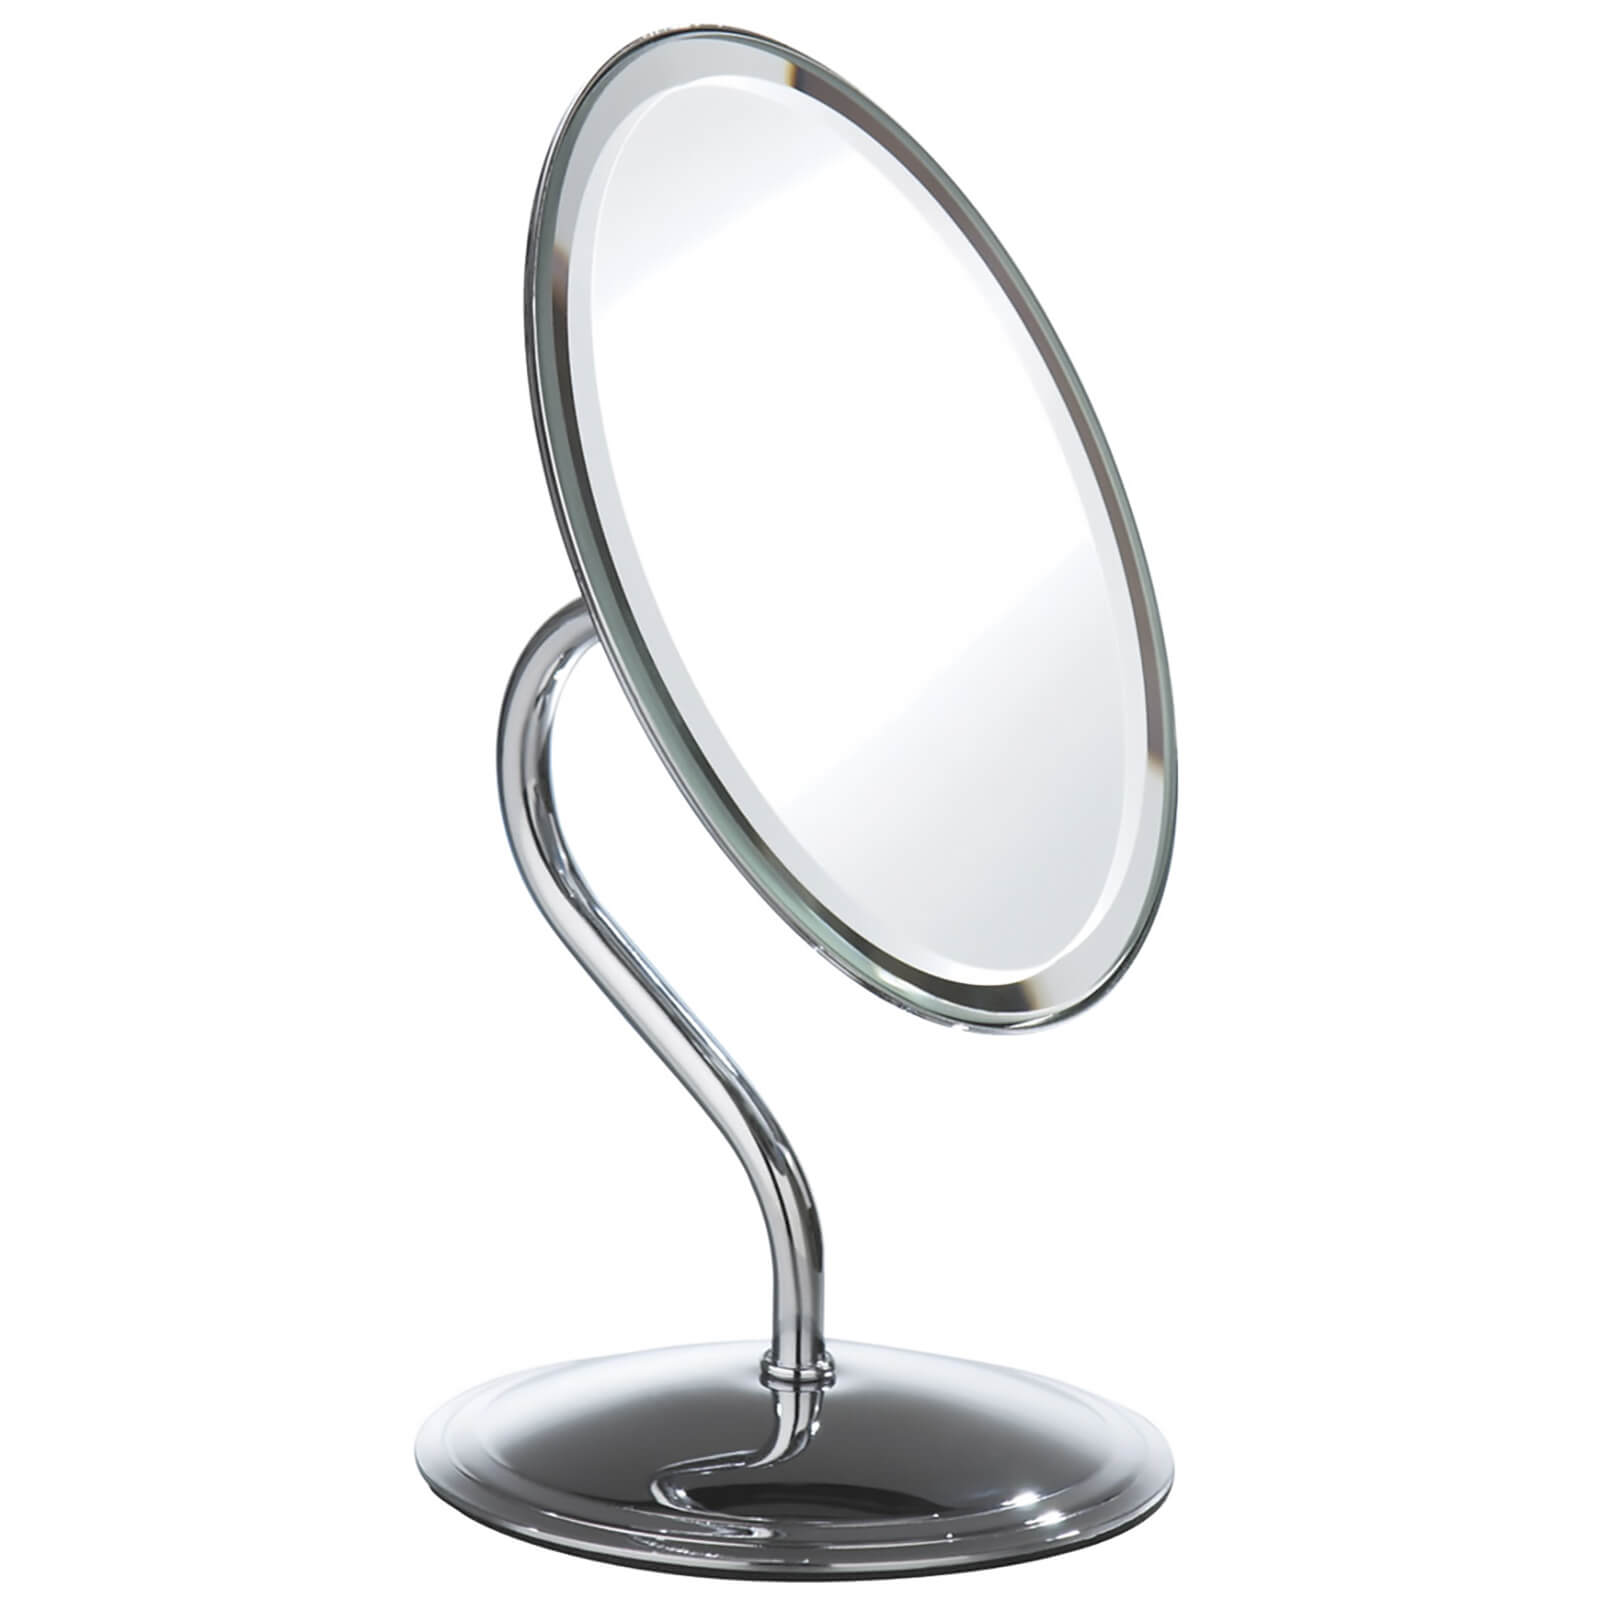 Premier Housewares Oval Swivel Mirror - Chrome Finish